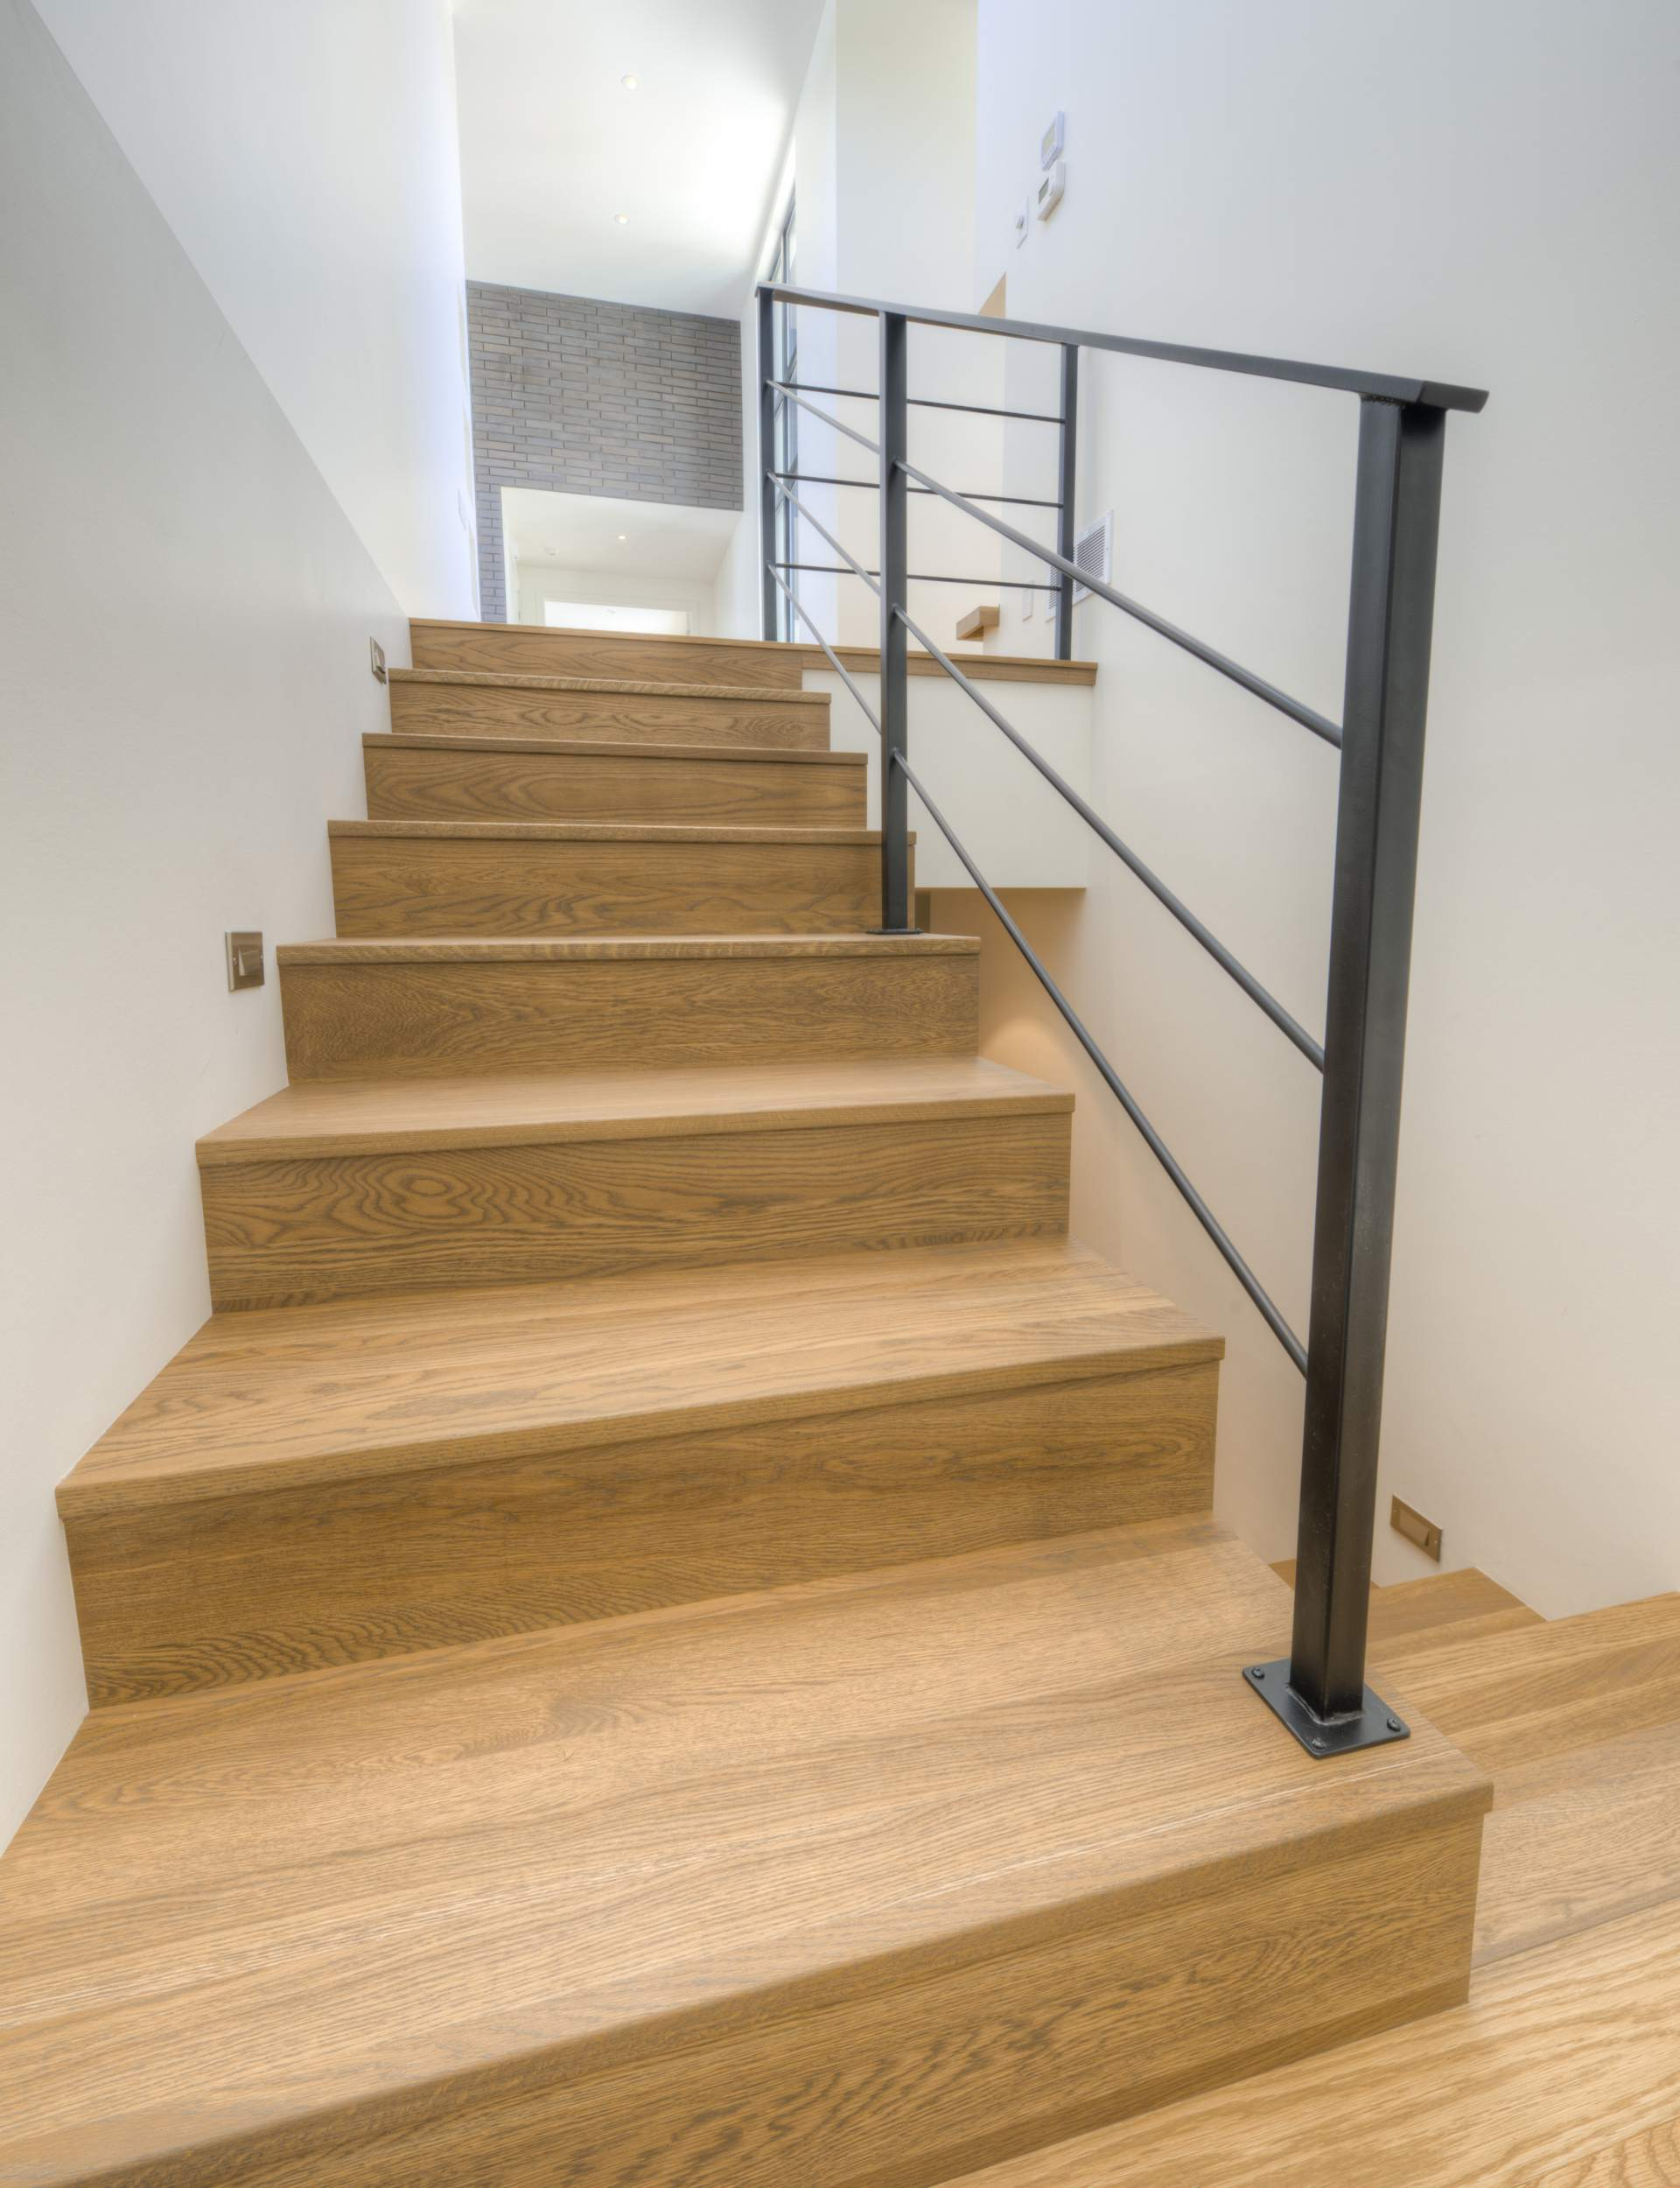 Renover escalier bois photos awesome with renover - Renover escalier en bois ...